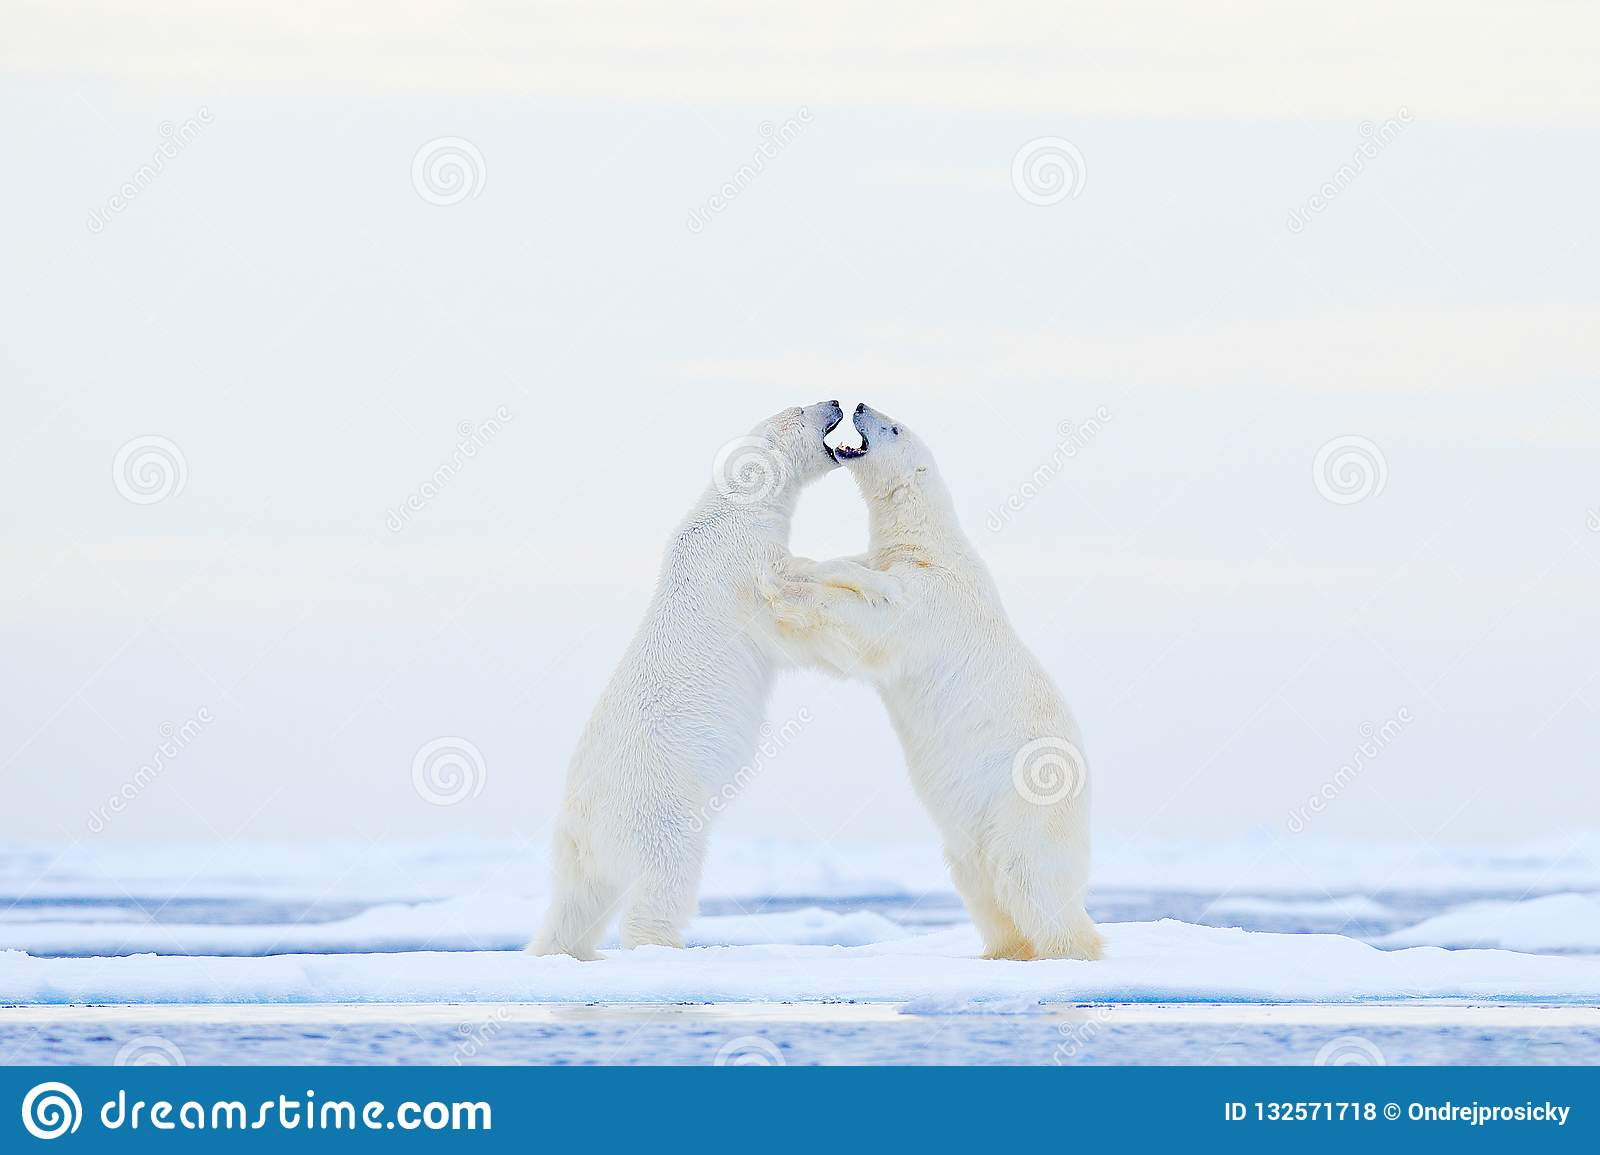 Polar bear dancing on the ice. Two Polar bears love on drifting ice with snow, white animals in the nature habitat, Svalbard,